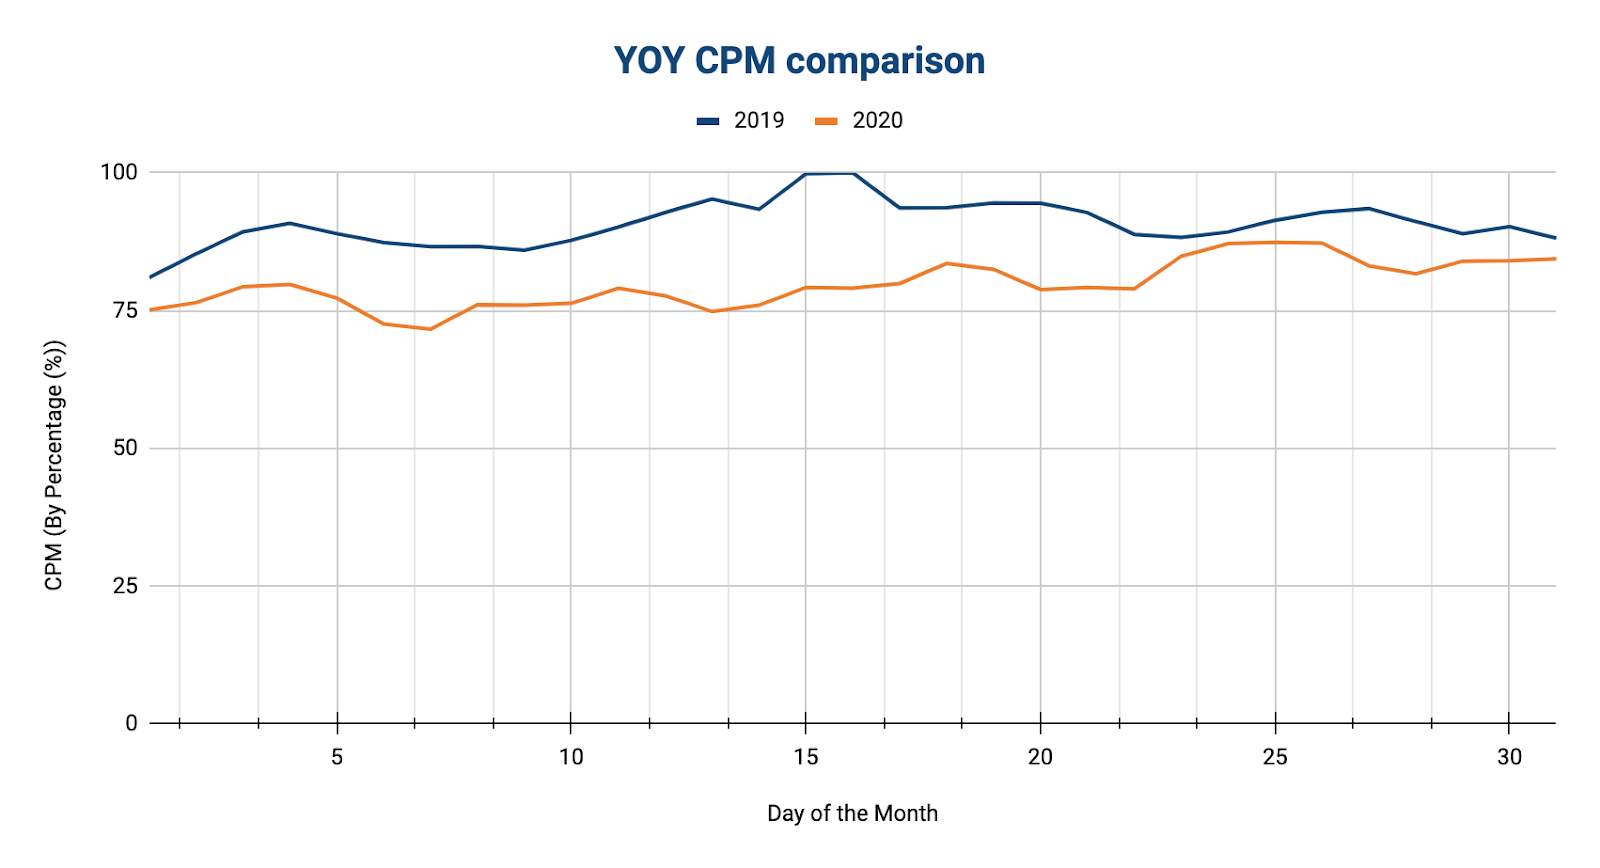 YOT CPM comparison